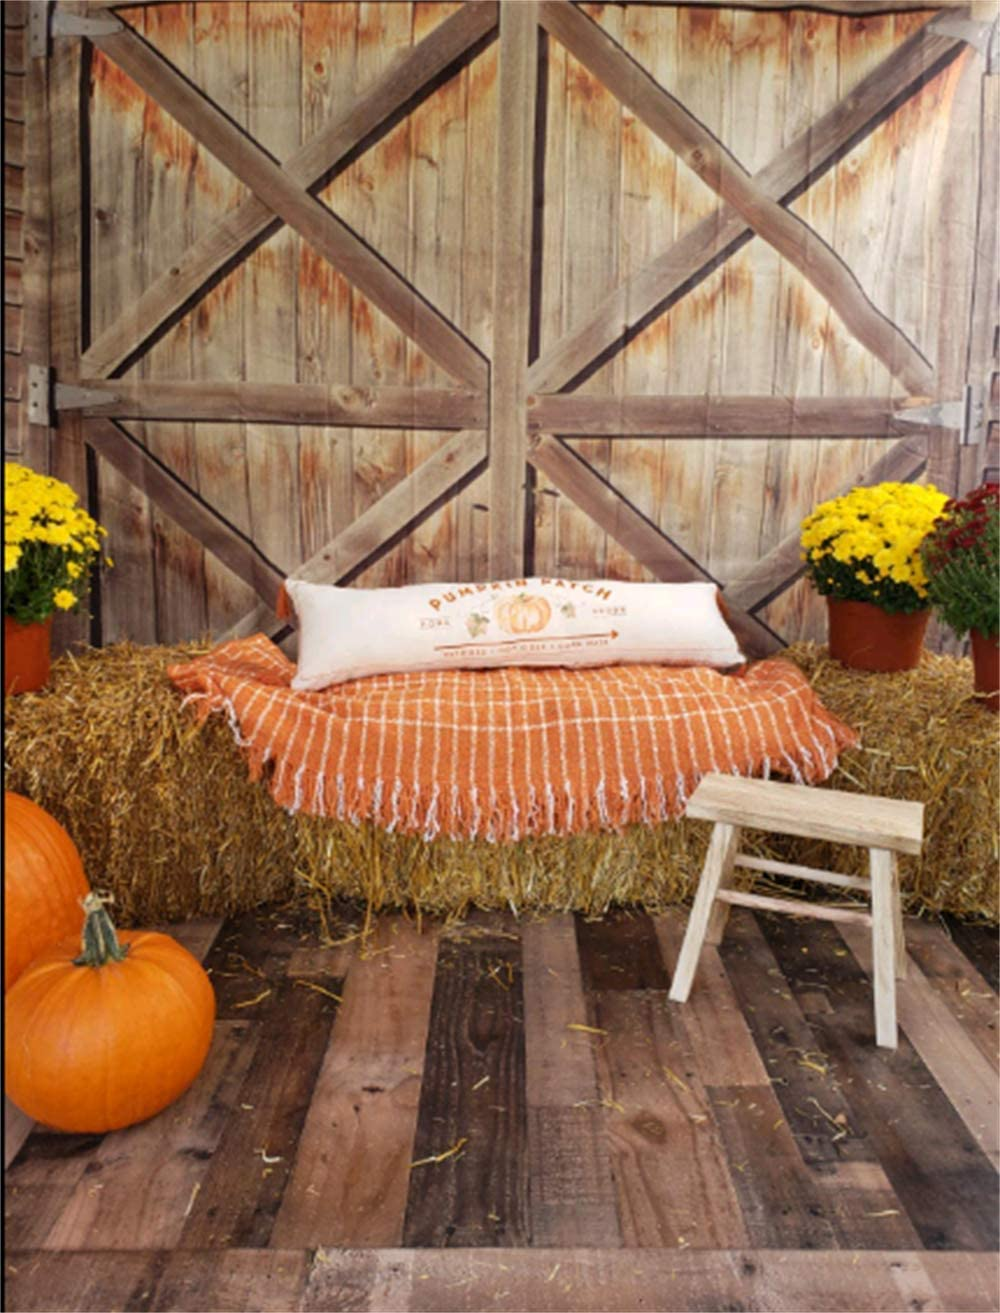 Leowefowa Rustic Barn Door Backdrop For Photography 10x10ft Western Cowboy Background Child Kids Adult Wedding Photo Shoot Wild West Theme Bday Party Banner Baby Shower Photo Booth Prop Xmas Wallpaper